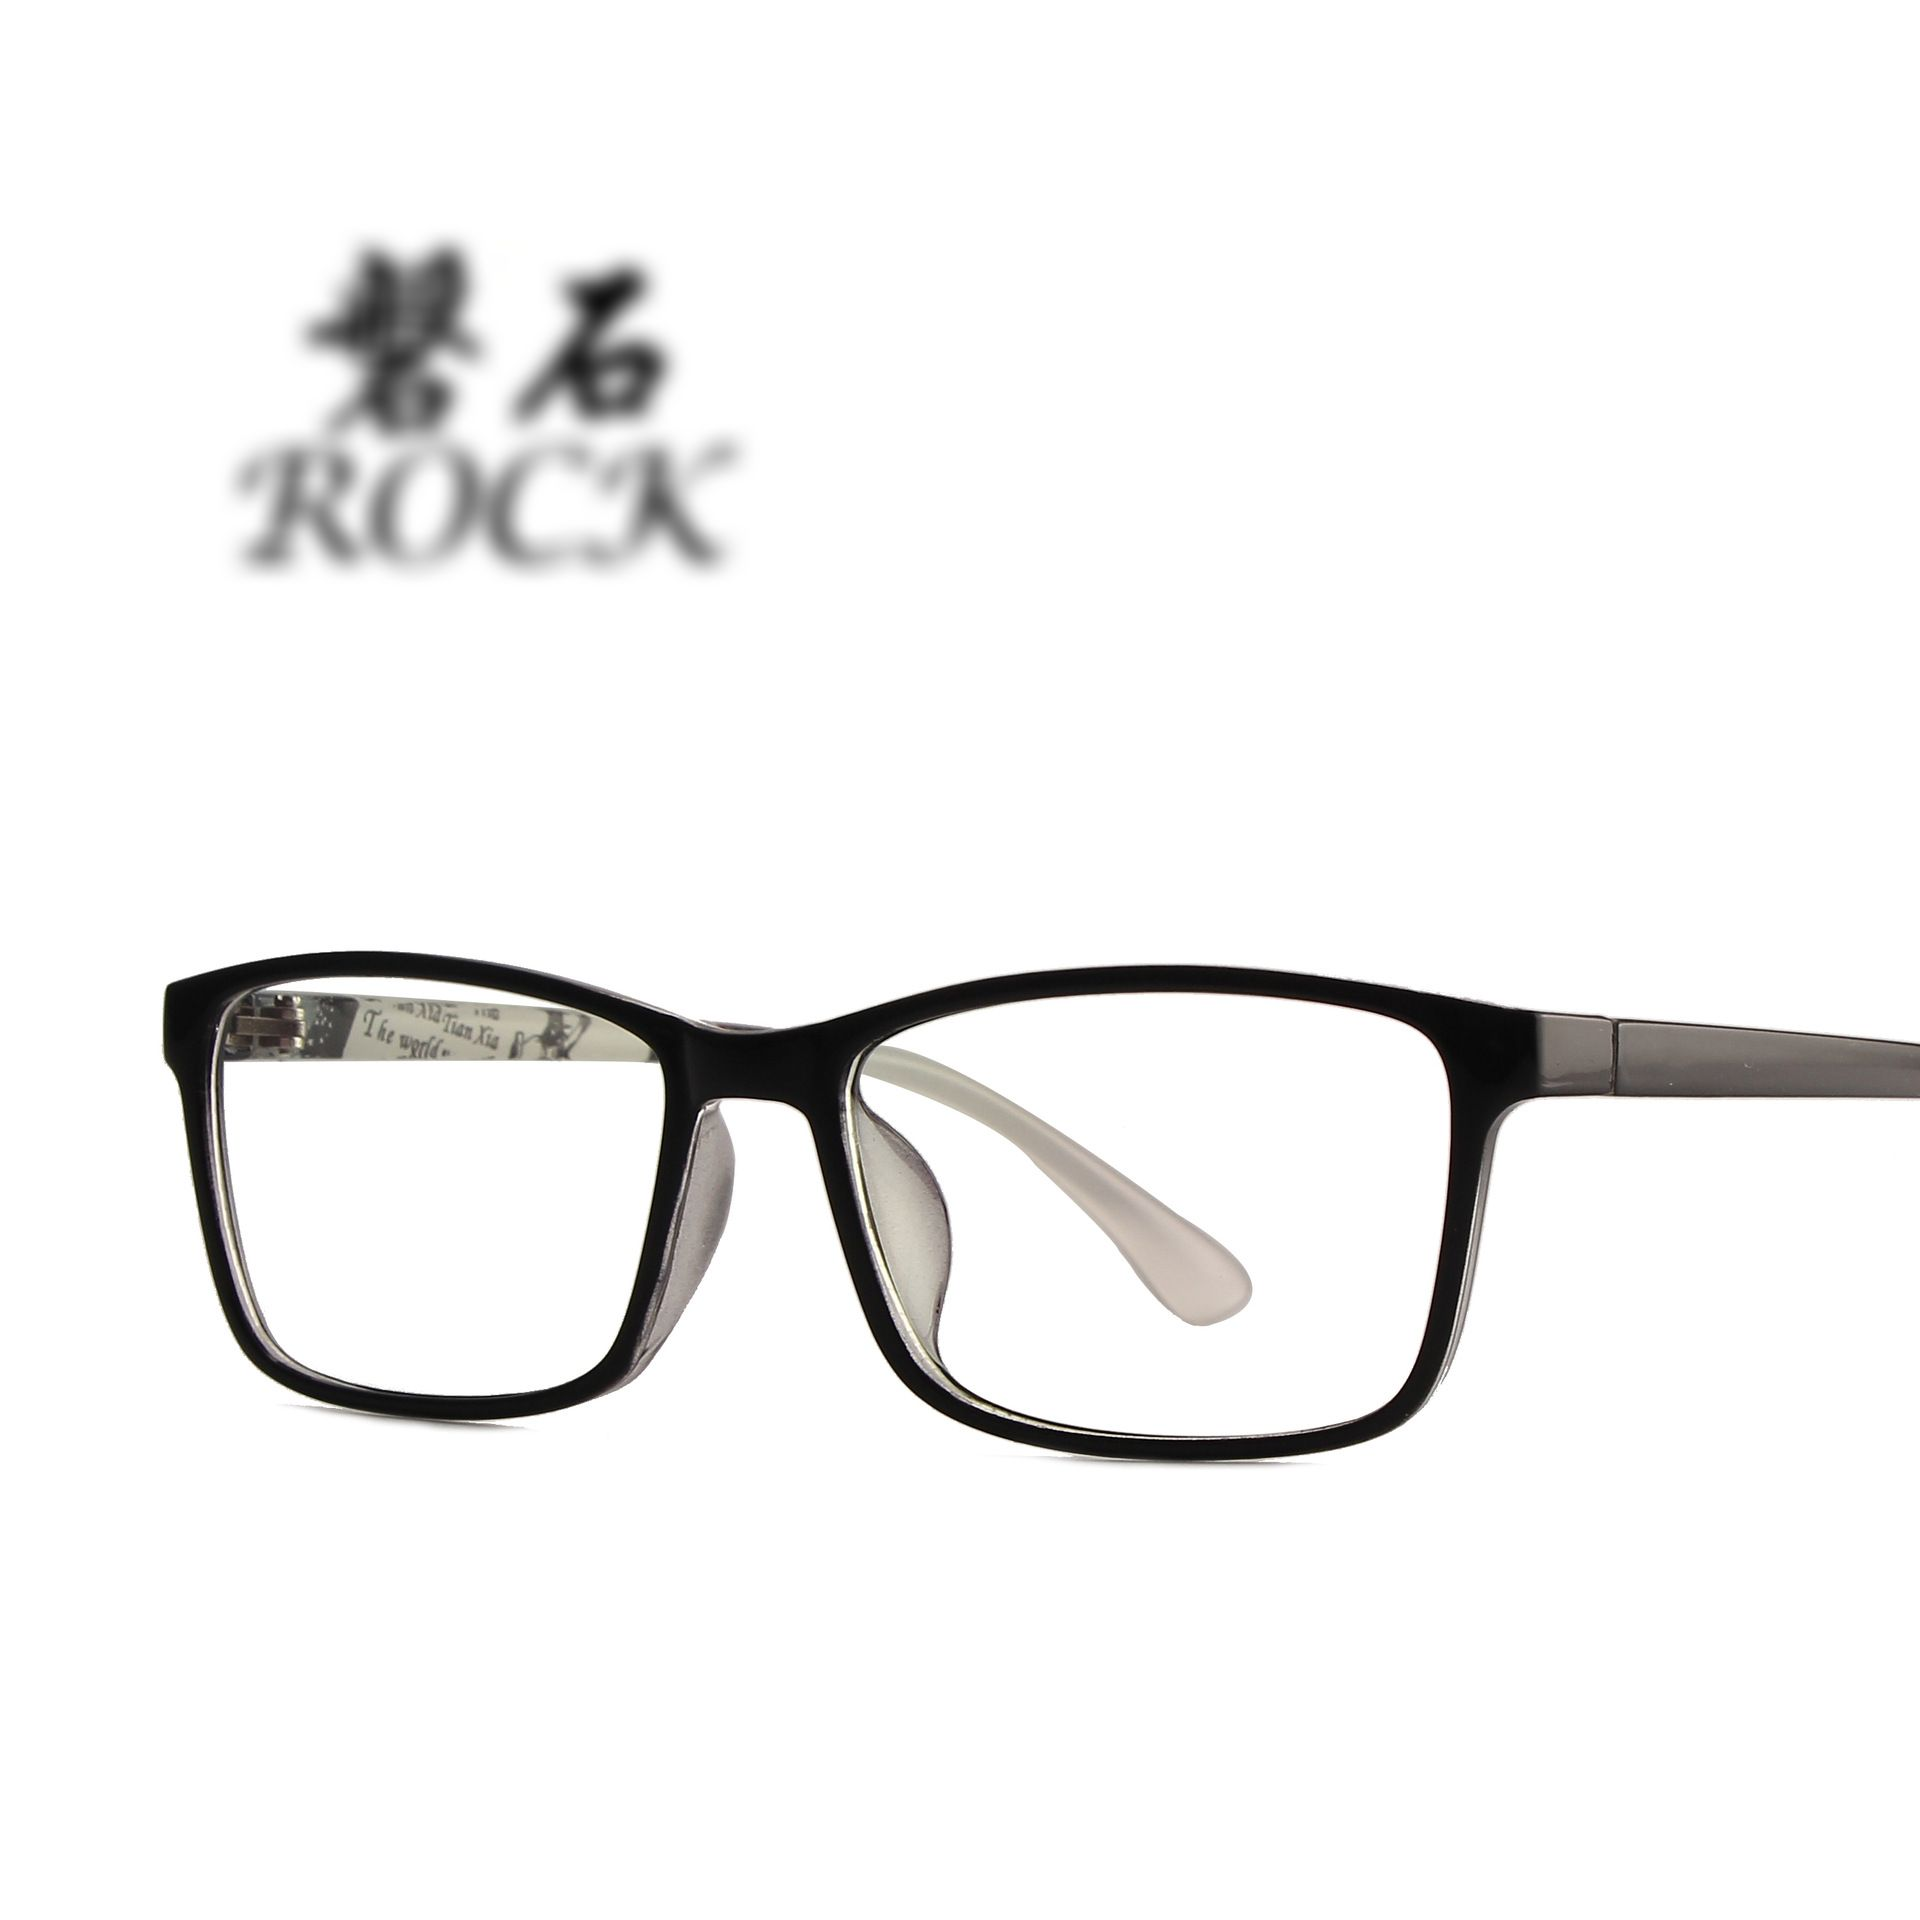 8231  Flat Mirror Box Glasses Frame Trend Glasses Frame Can Be Equipped With Myopia Glasses